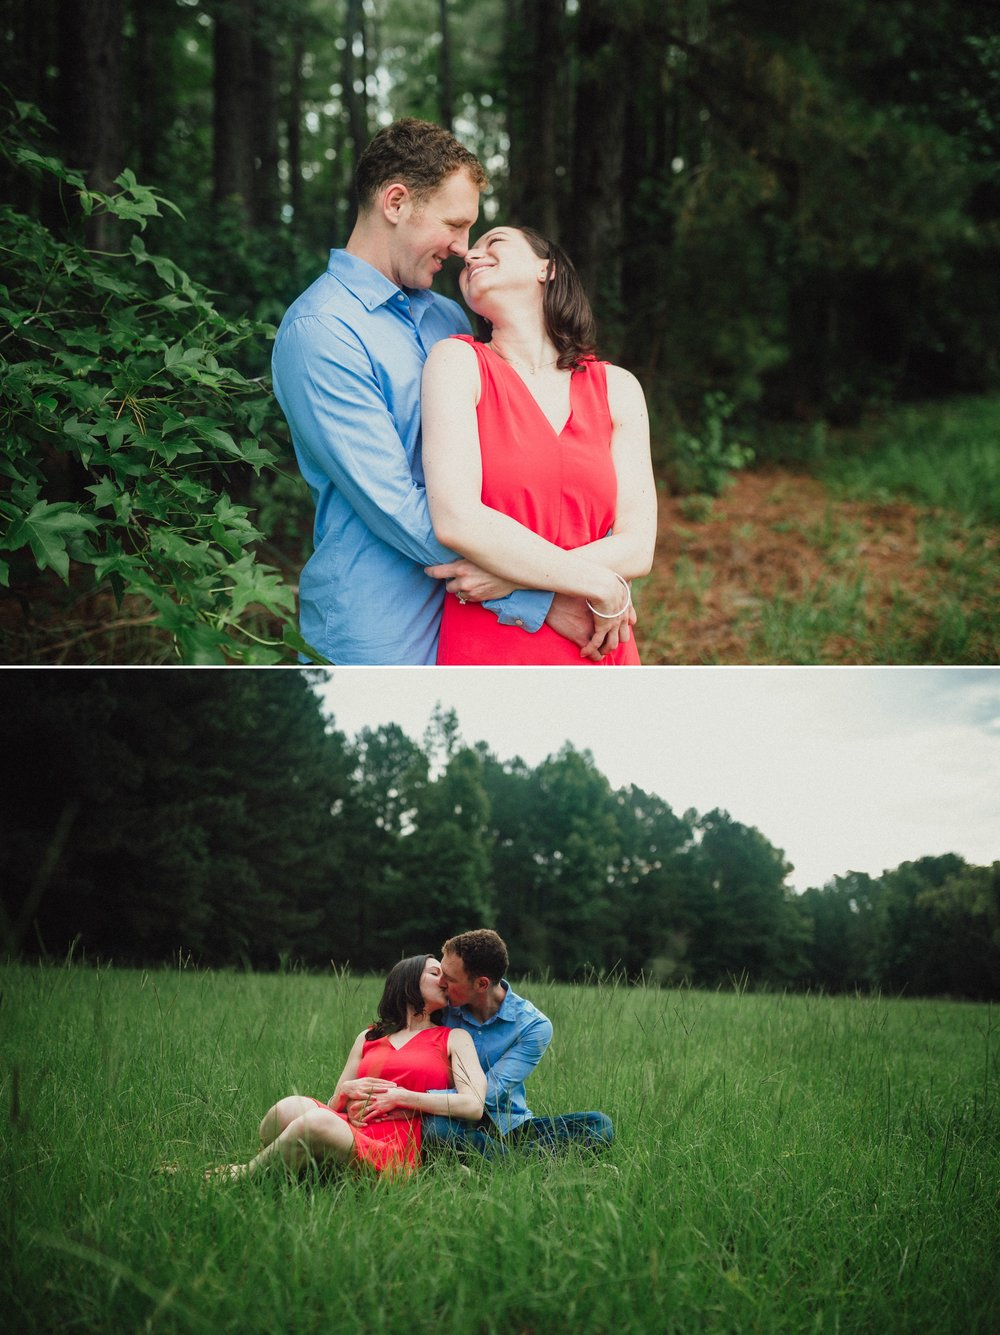 Sarah + Kyle - Engagement Photography Session in Fayetteville, North carolina 3.jpg